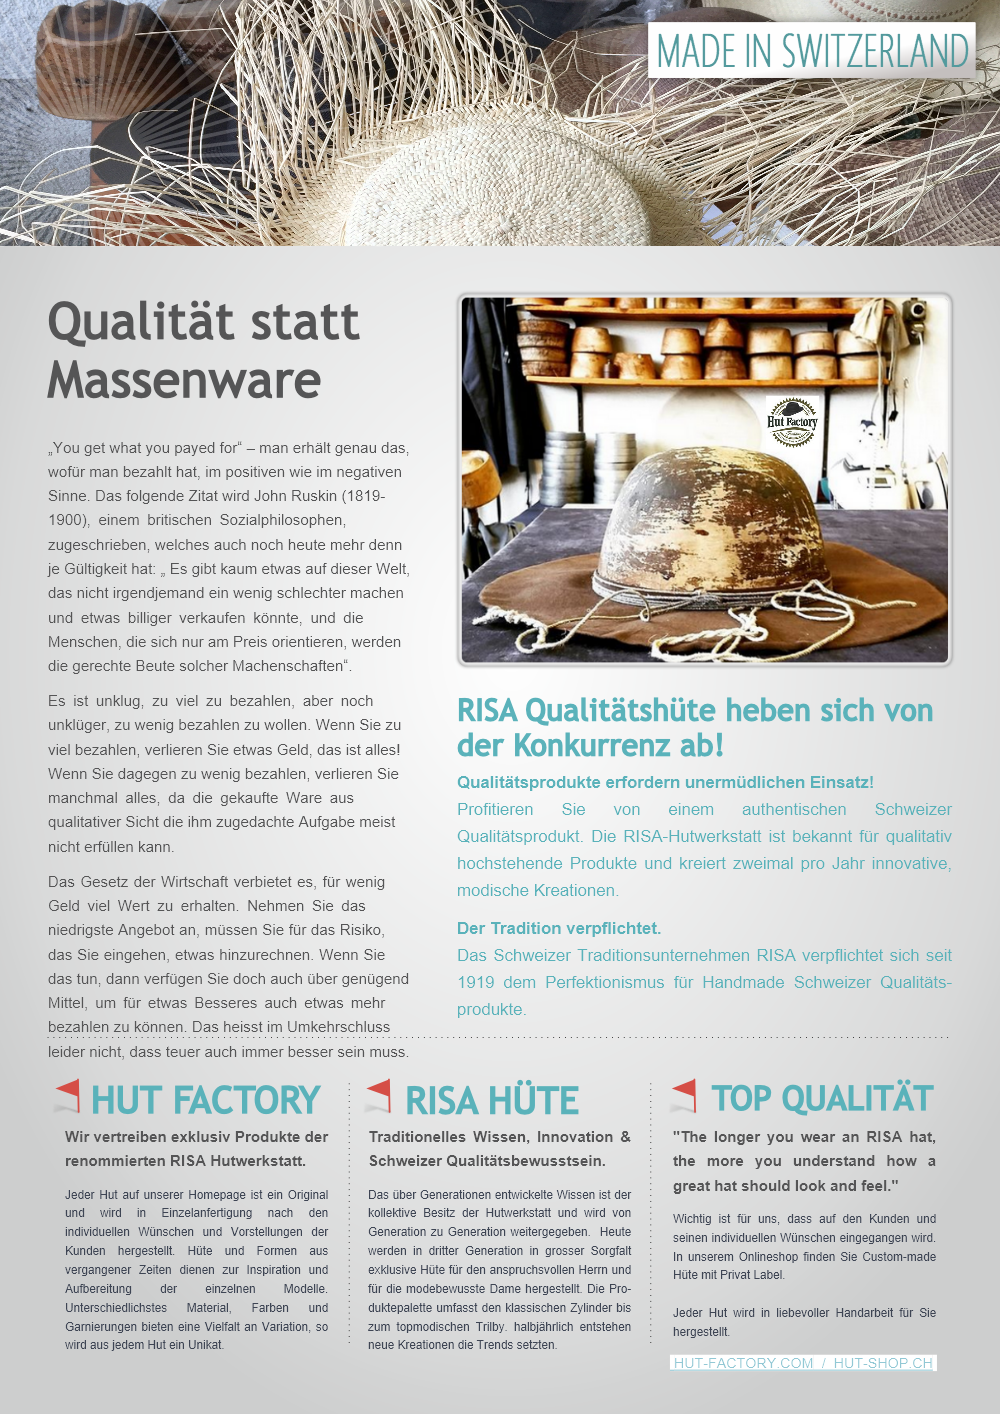 Qualitaet_statt_Massenware.Hut-Factory.2